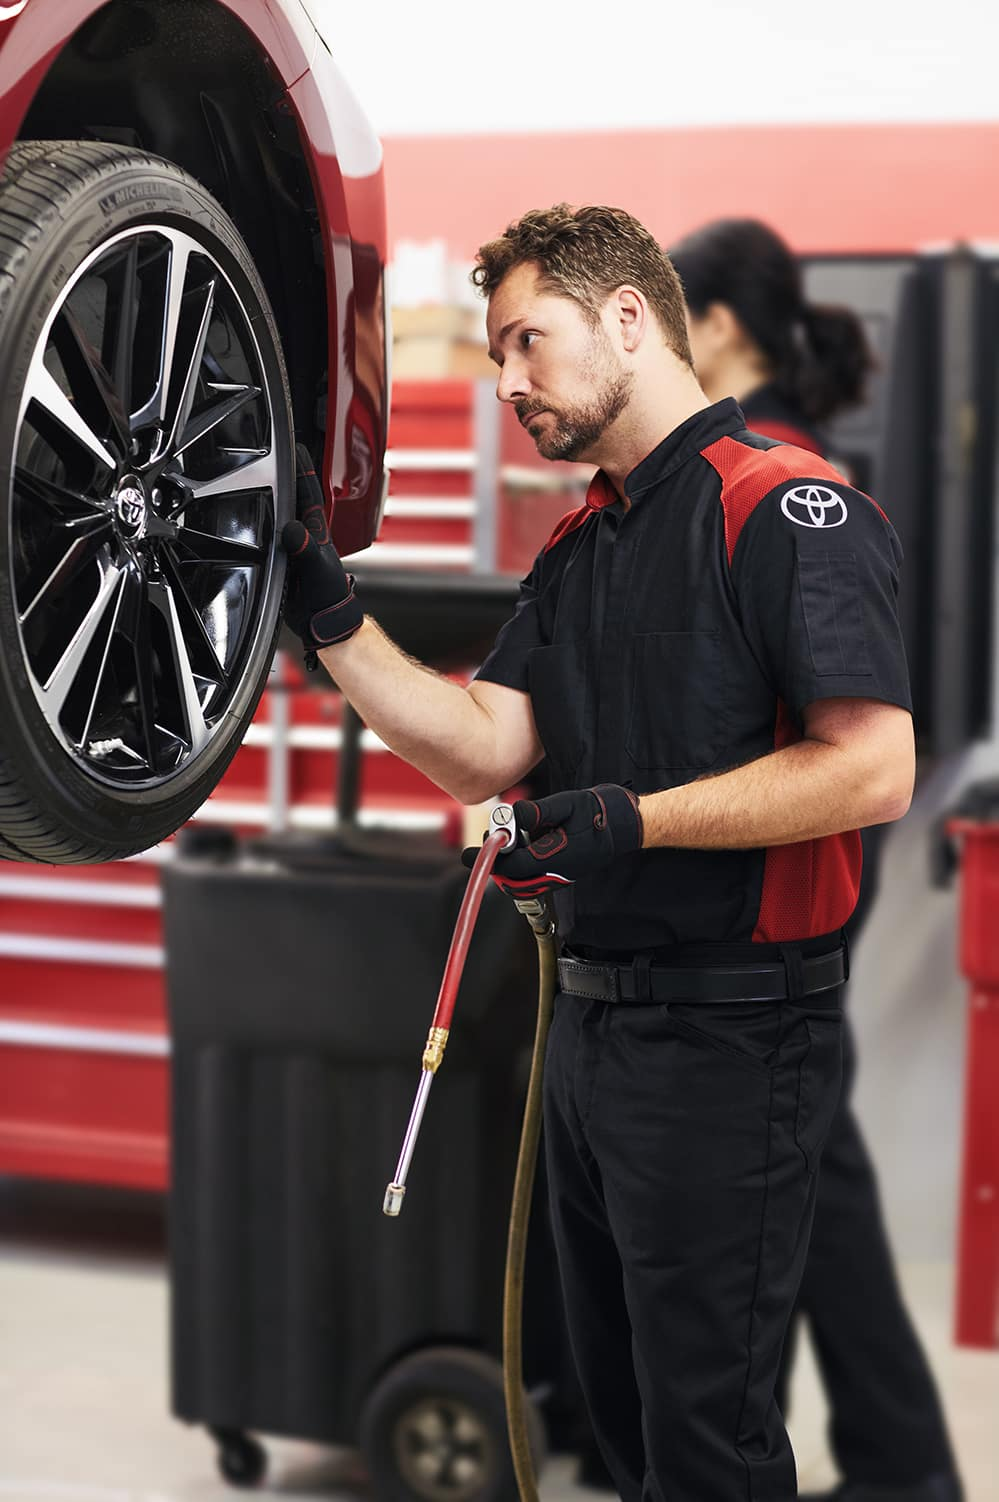 Halterman's Toyota is a Toyota Dealership in East Stroudsburg PA | Mechanic replacing tires on a Toyota vehicle